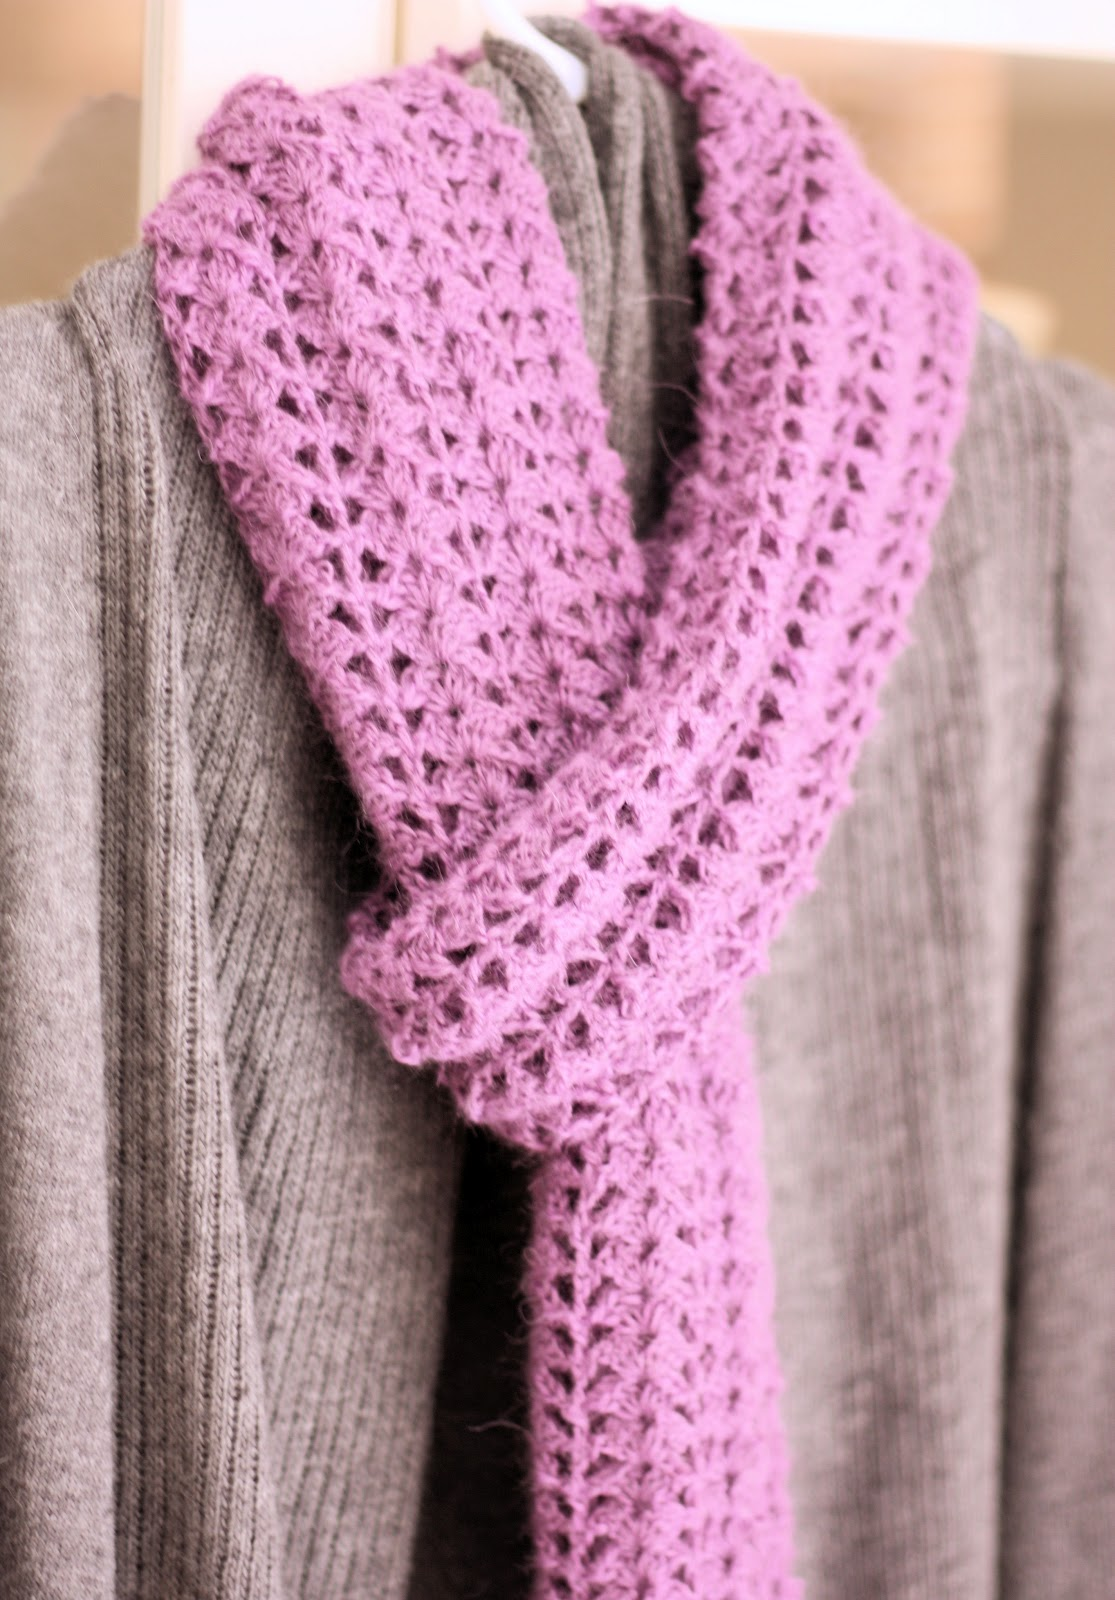 Crochet Pattern For Scarf Easy : Crocheted Scarf {Free Pattern} - A Spoonful of Sugar